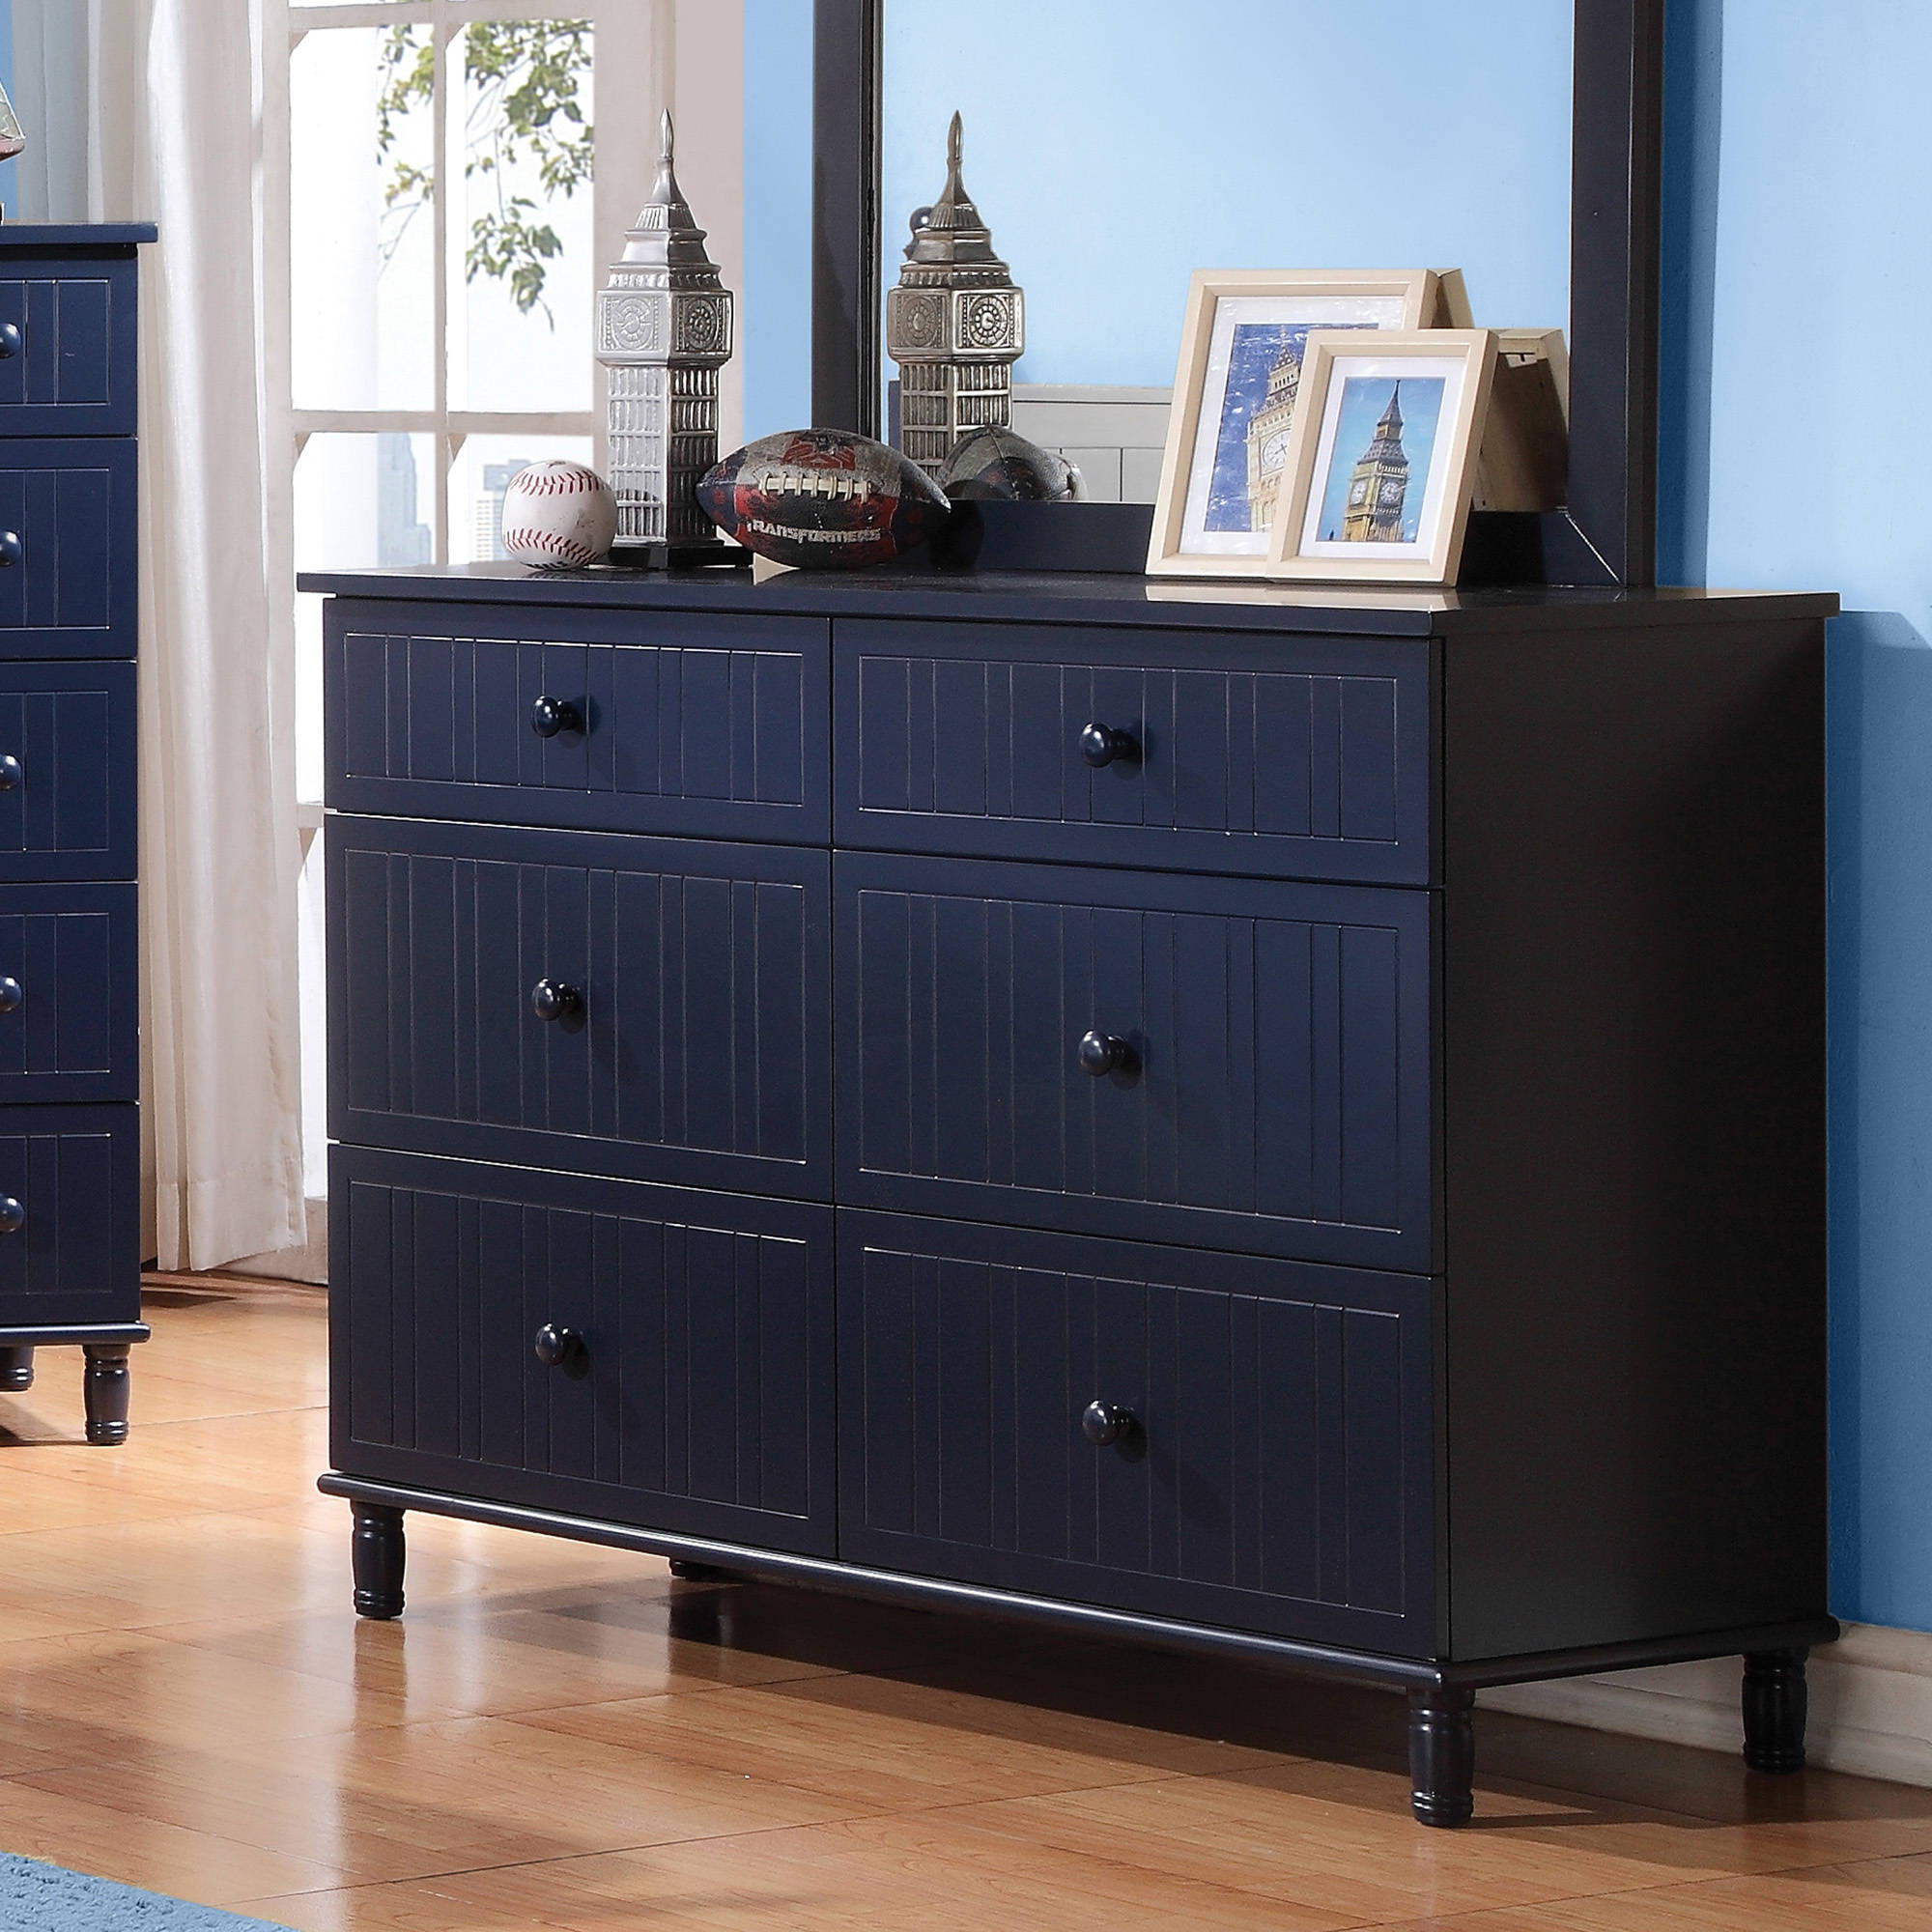 Coaster Company Zachary Collections Dresser, Navy